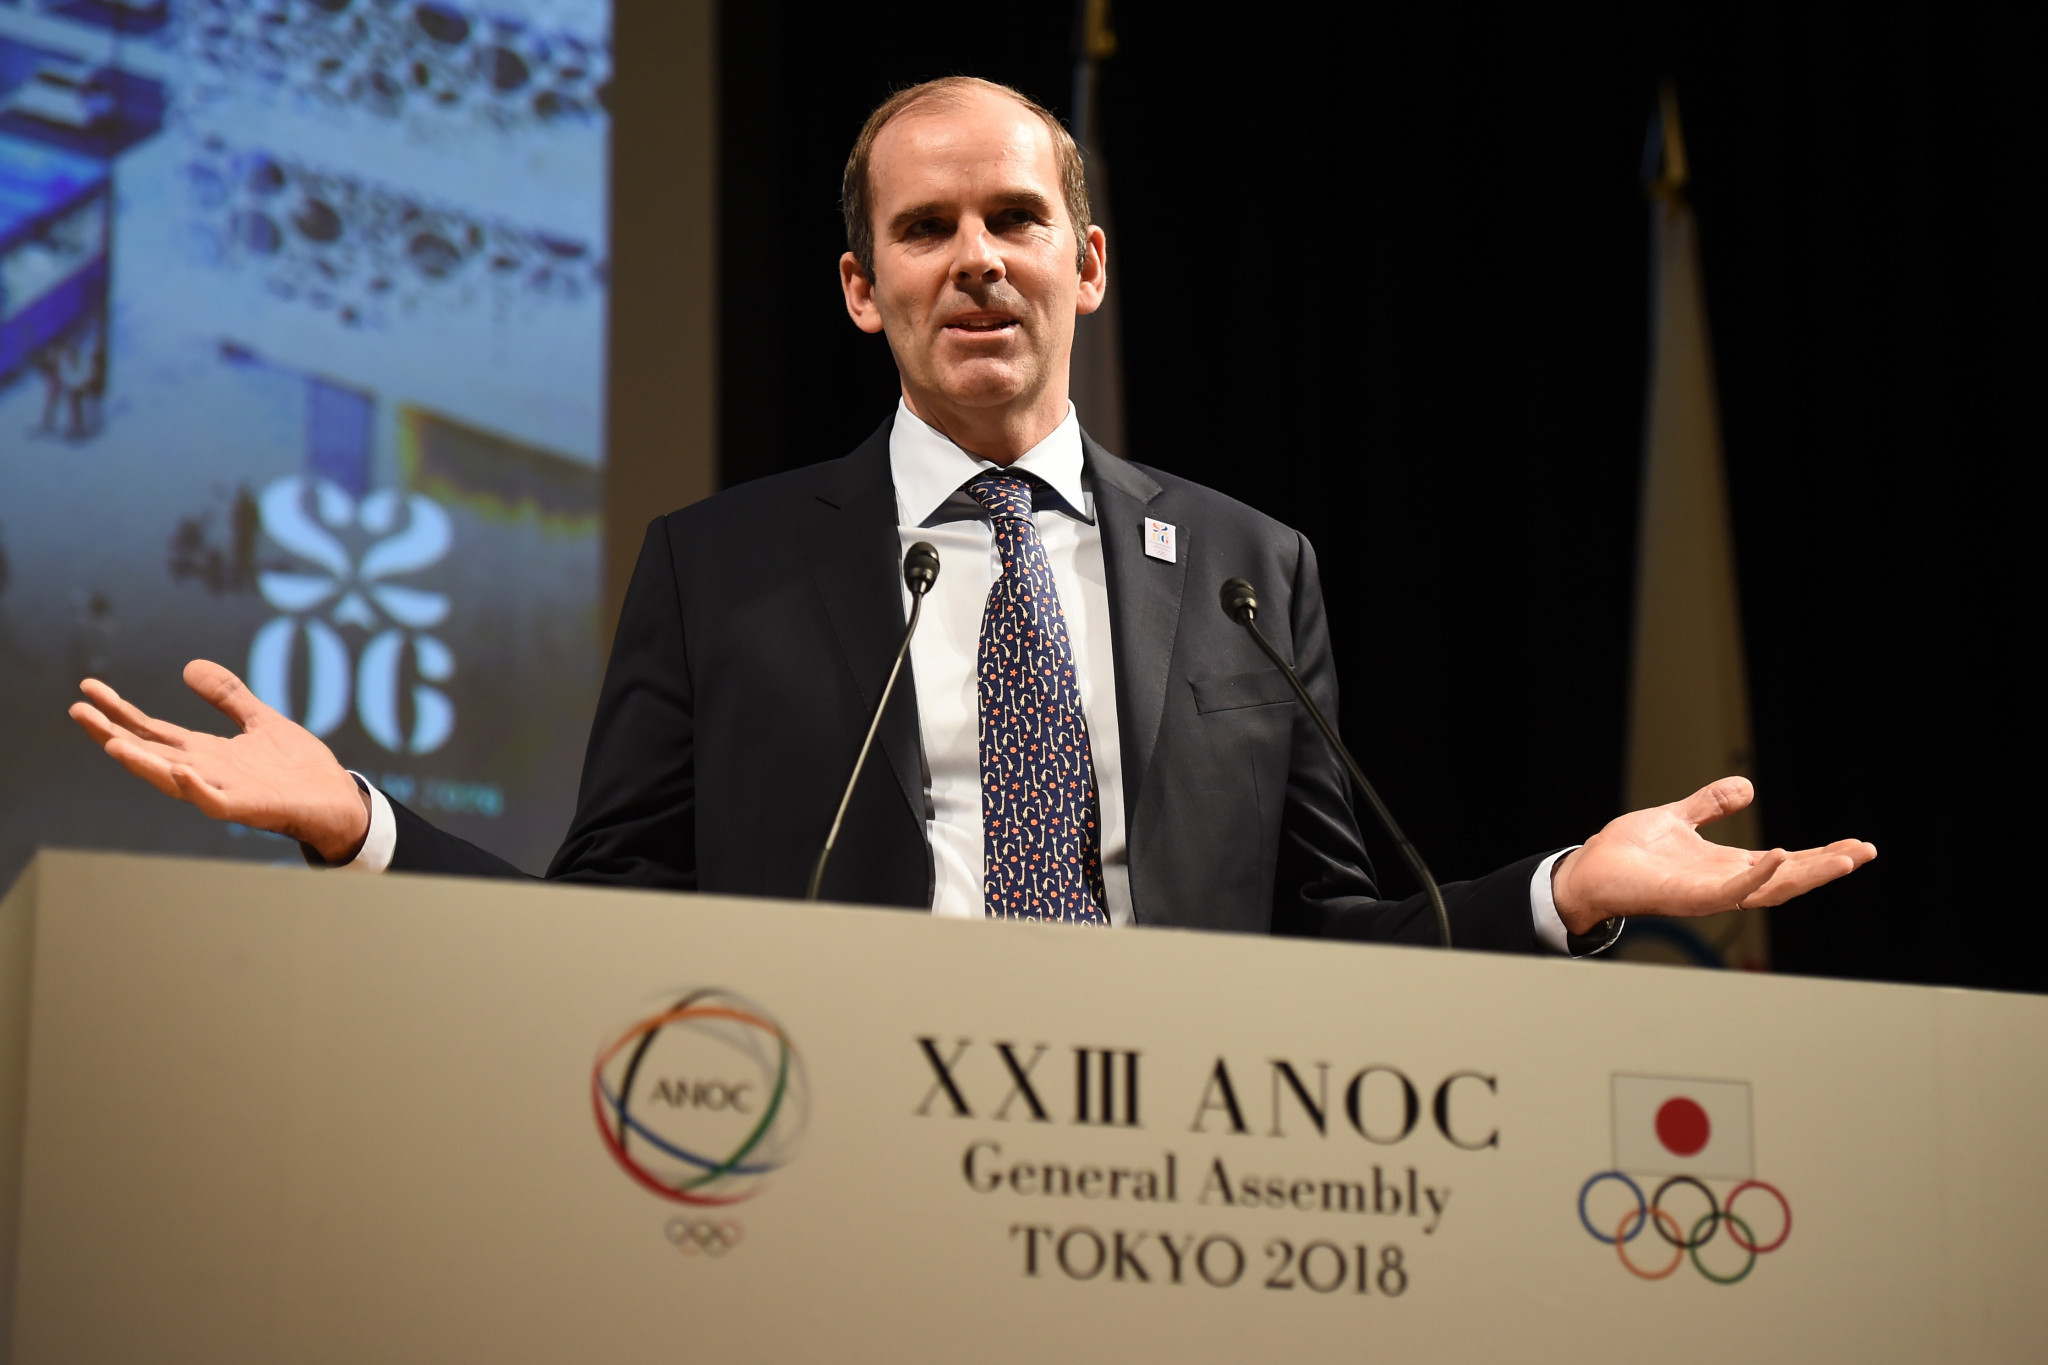 Stockholm-Åre 2026 chief executive Richard Brisius claimed that the bid had